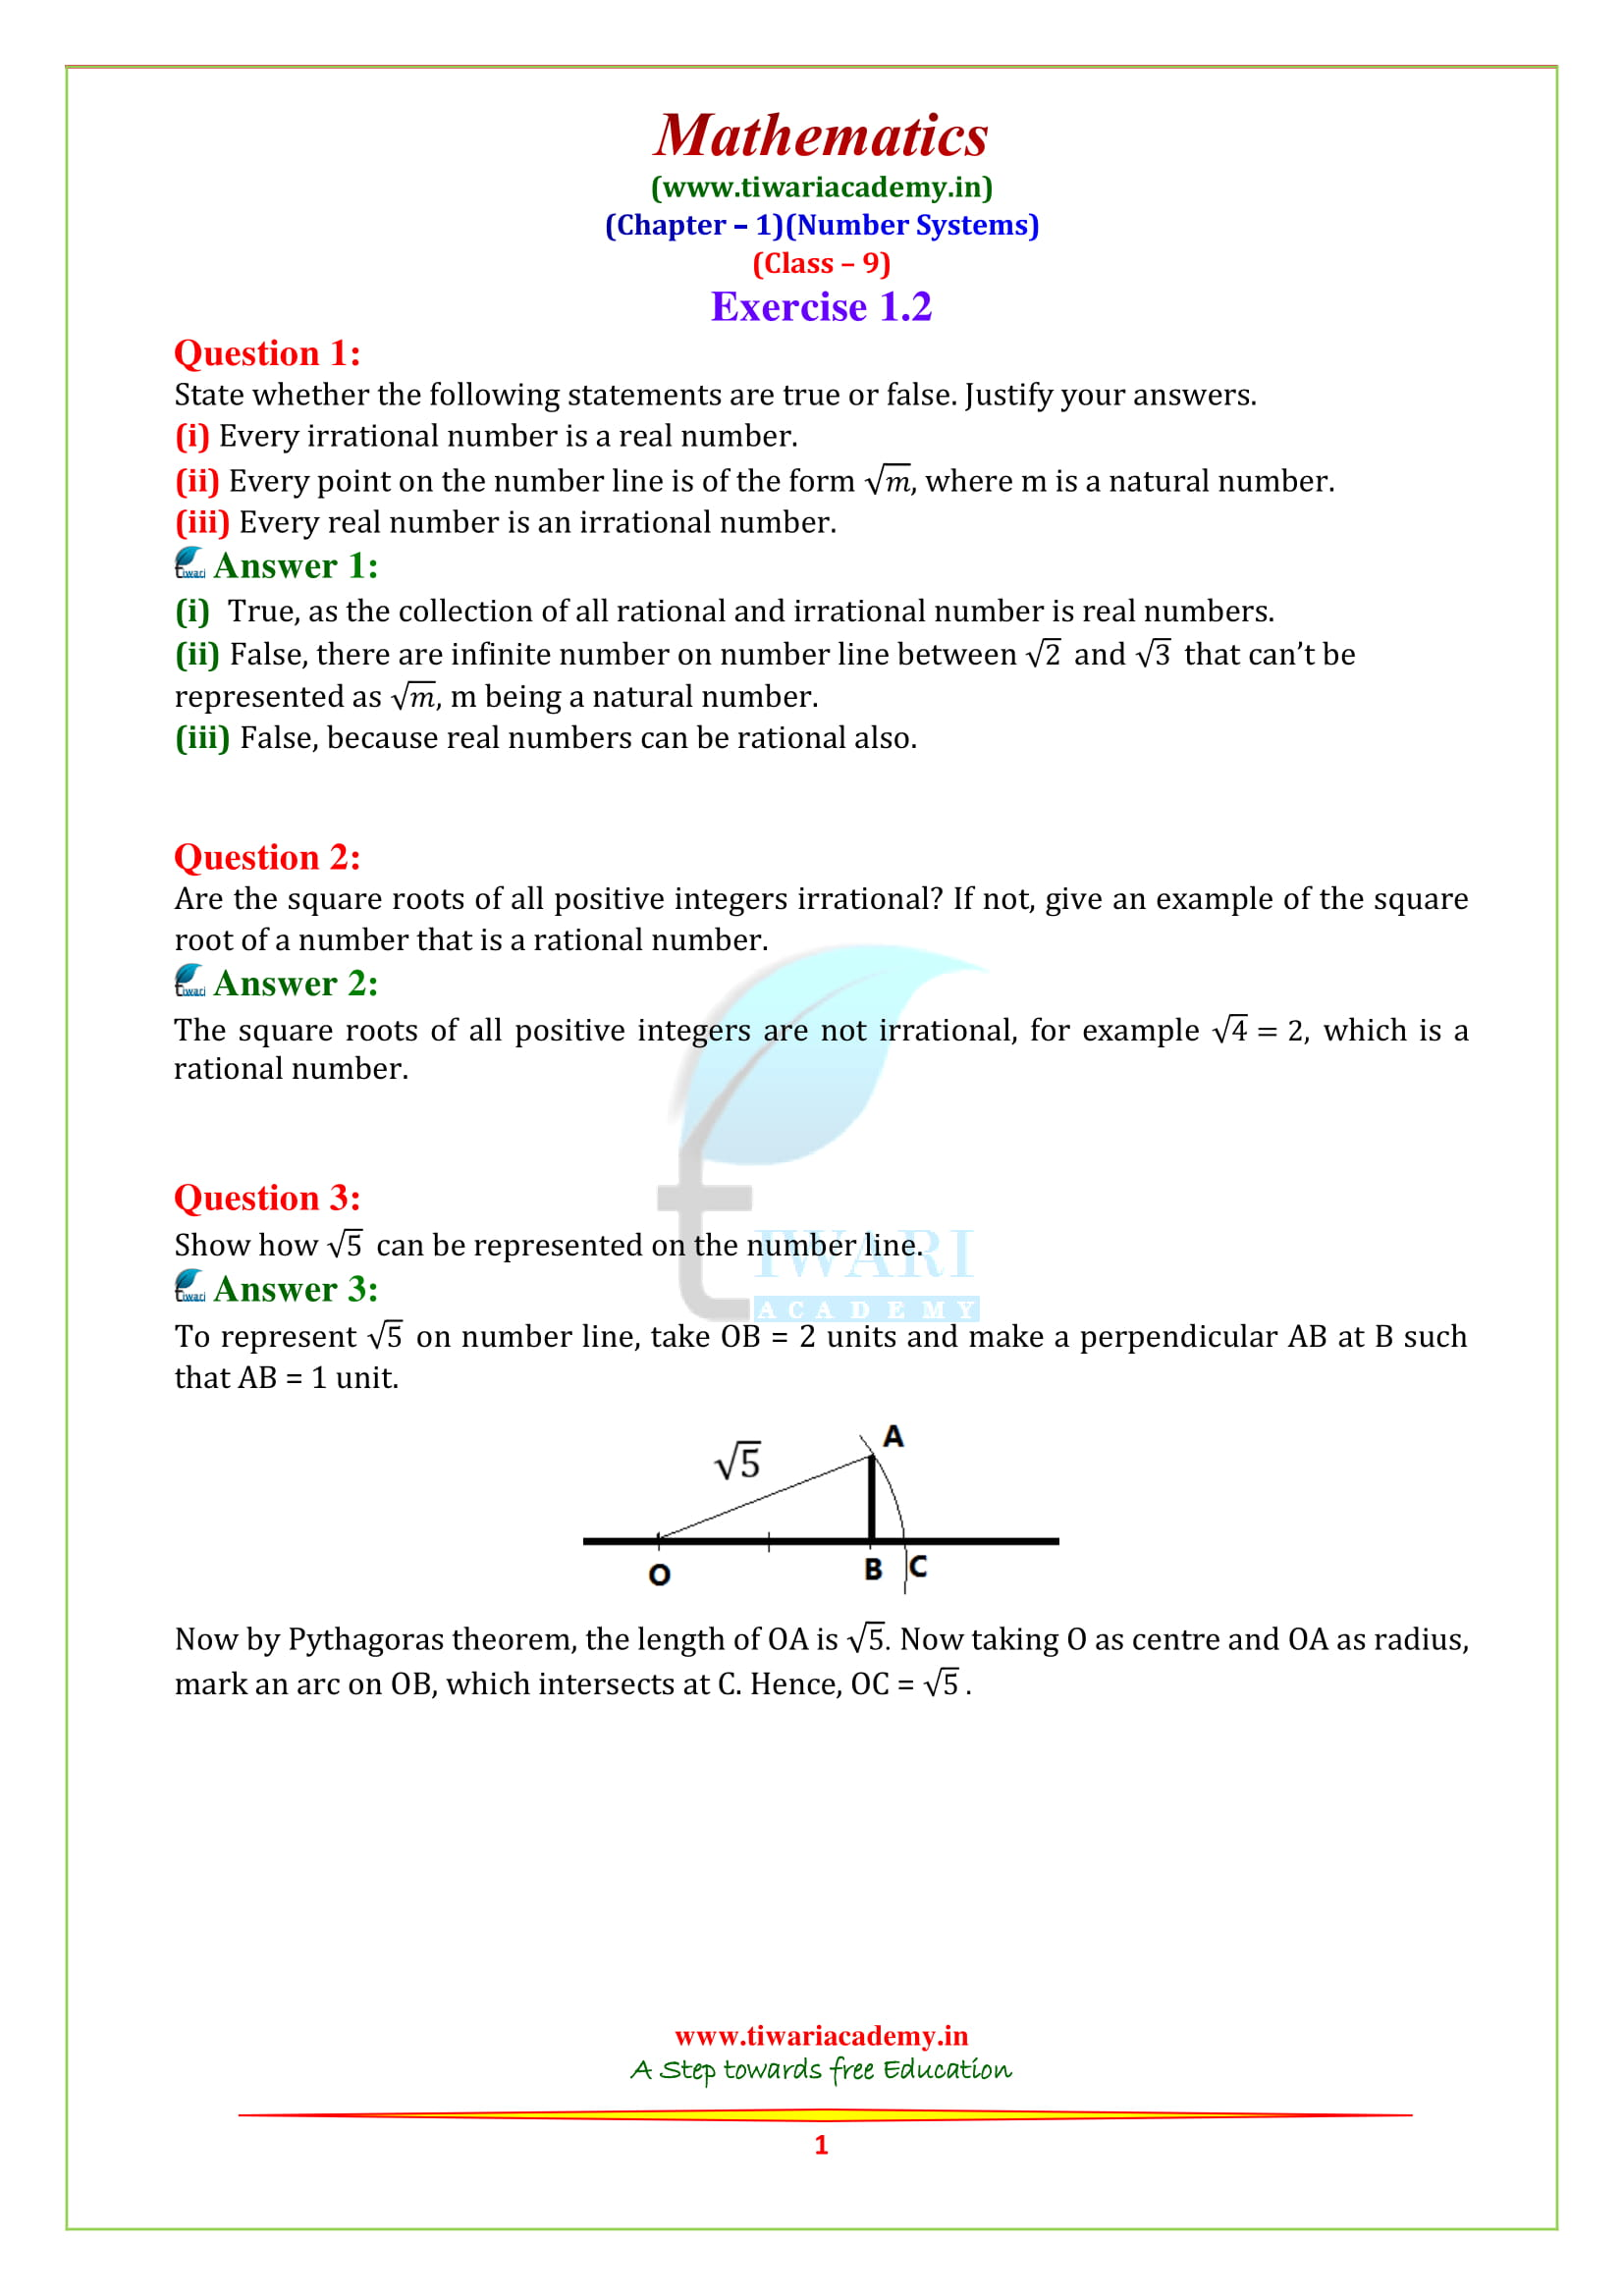 NCERT Solutions for Class 9 Maths Chapter 1 Exercise 1.2